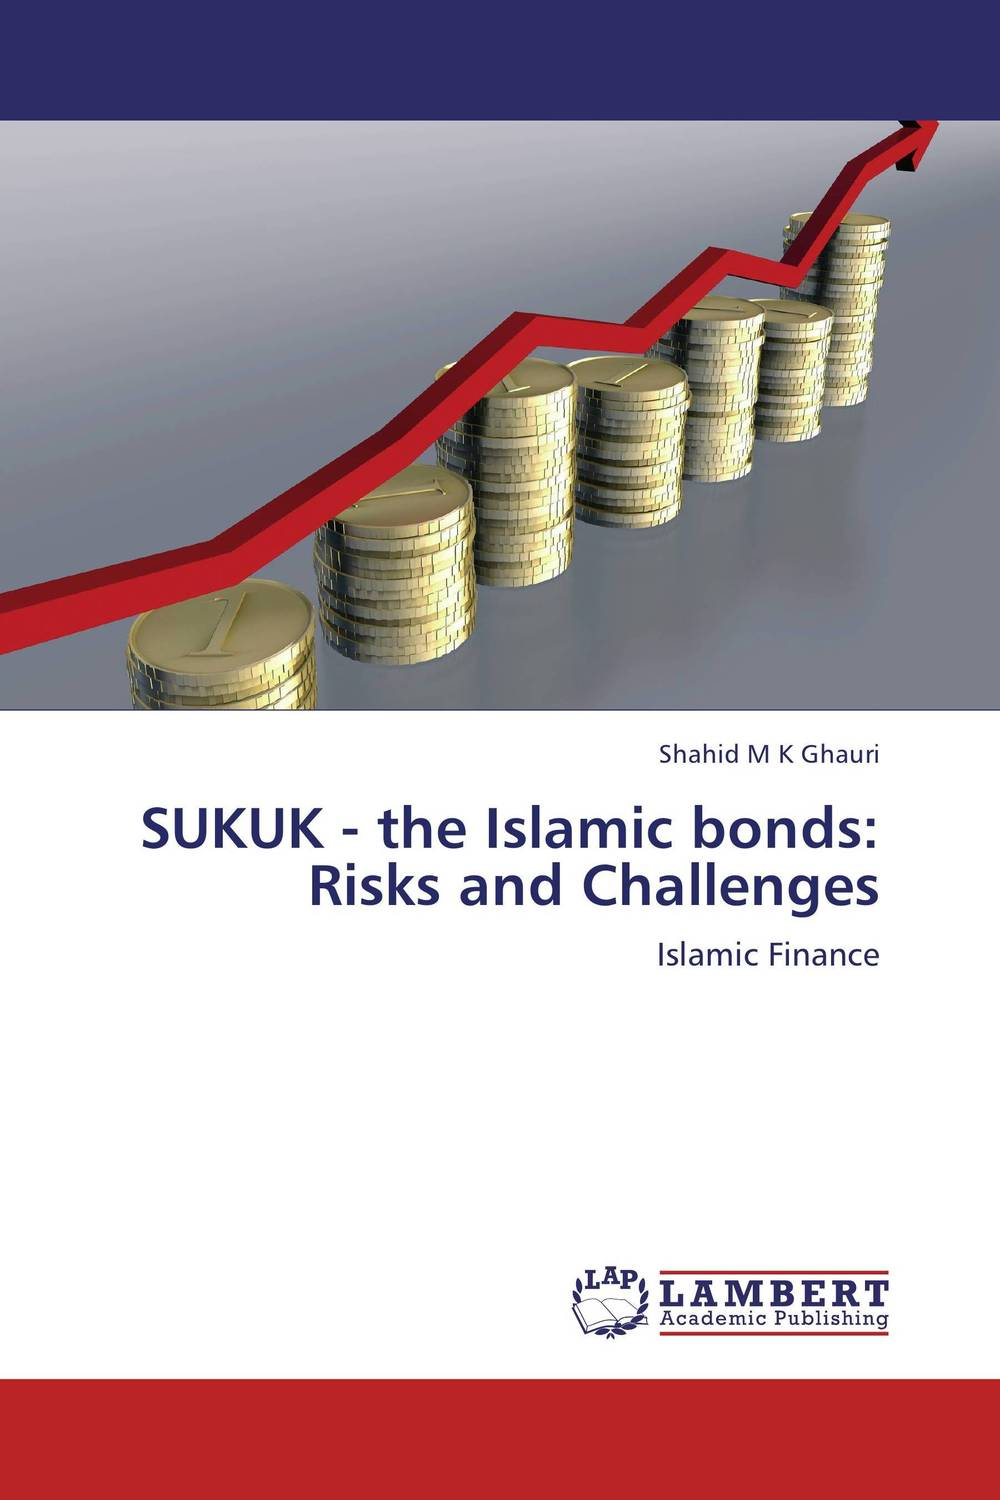 SUKUK - the Islamic bonds: Risks and Challenges textiles of the islamic world